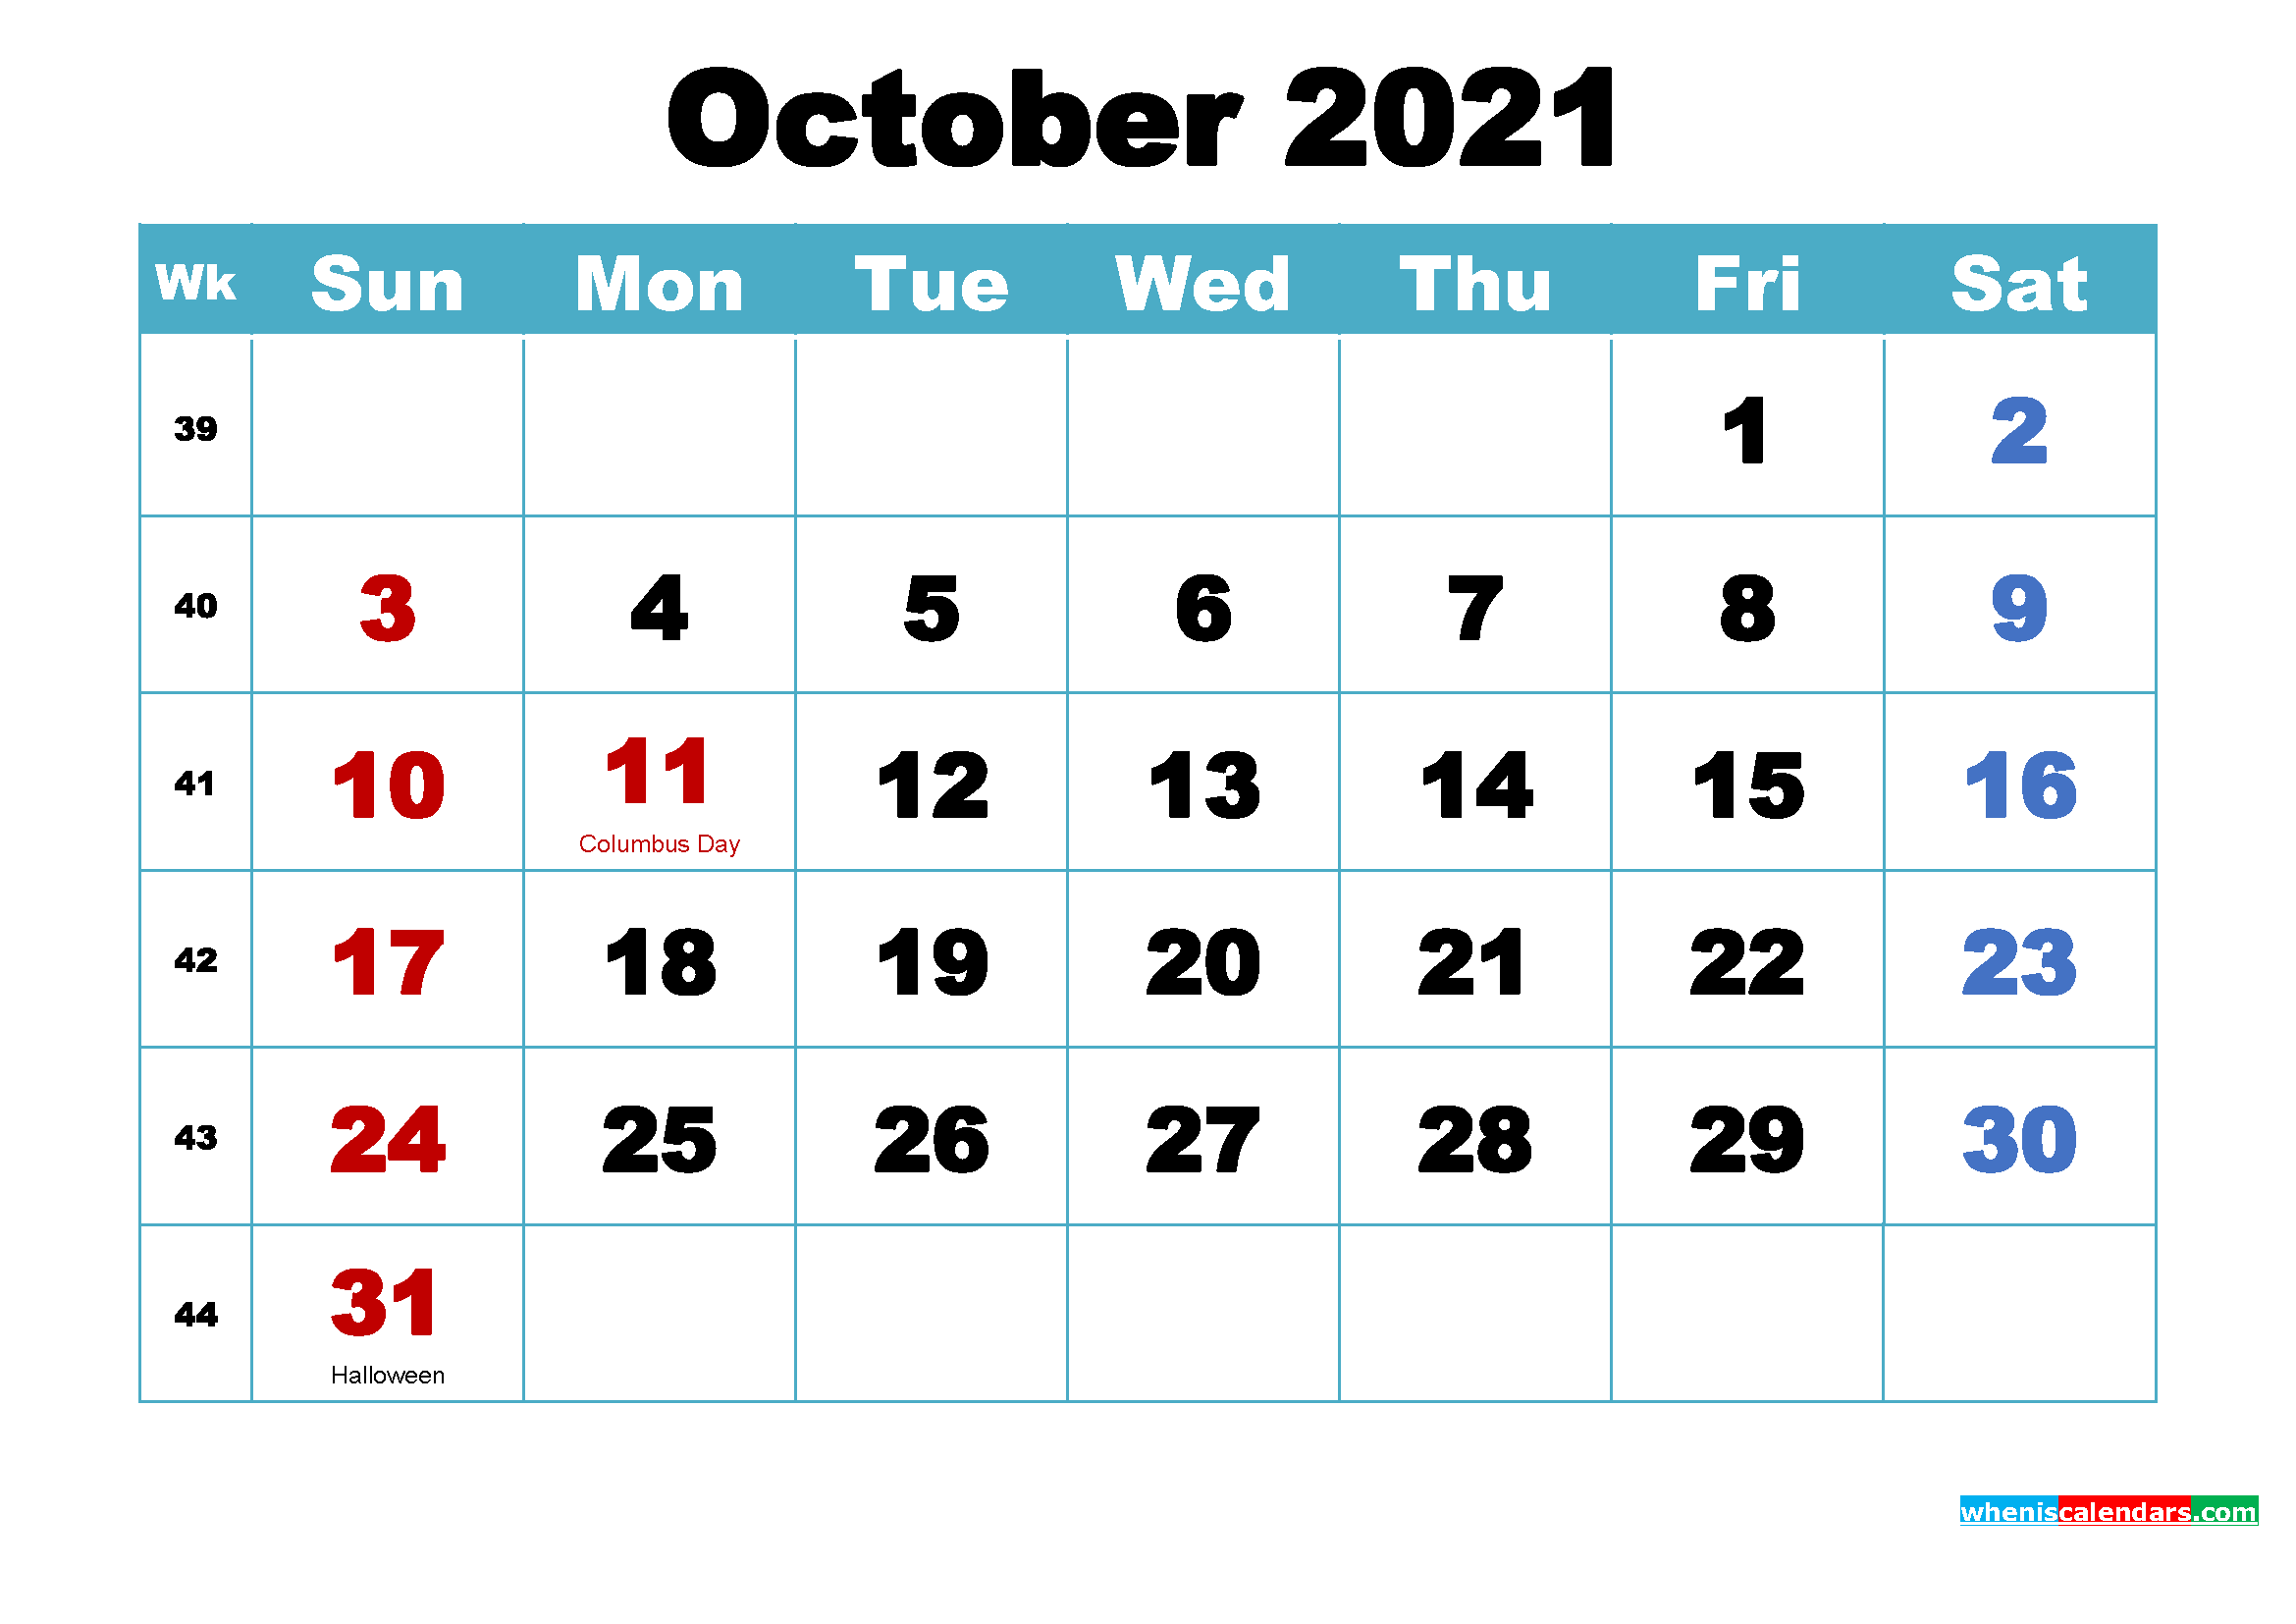 October 2021 Desktop Calendar Free October 2021 Desktop Calendar High Resolution – Free